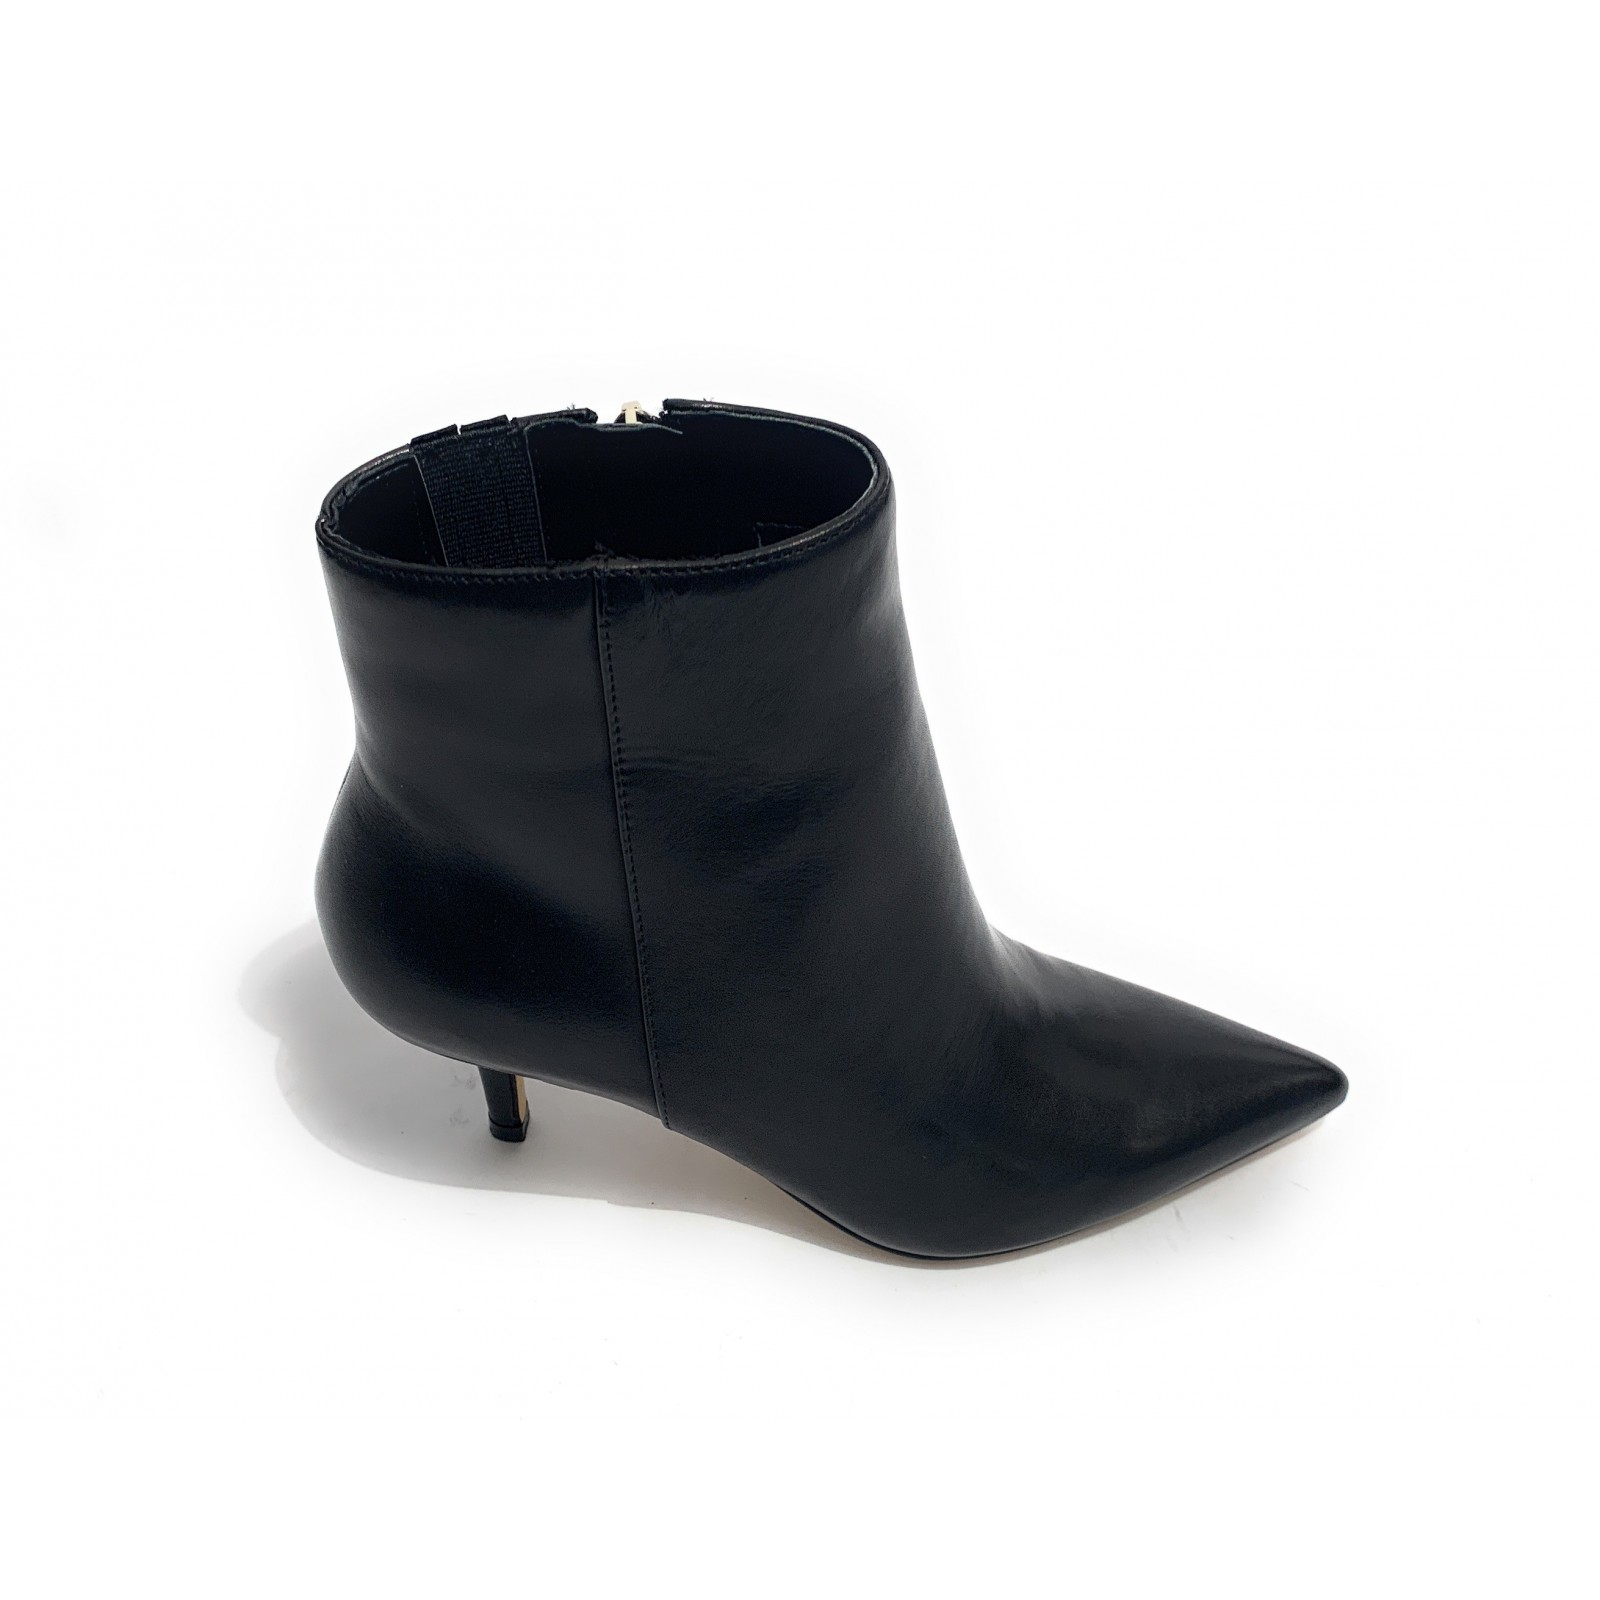 Scarpe donna ankle boot Guess tronchetto mod Dual tc 40 in